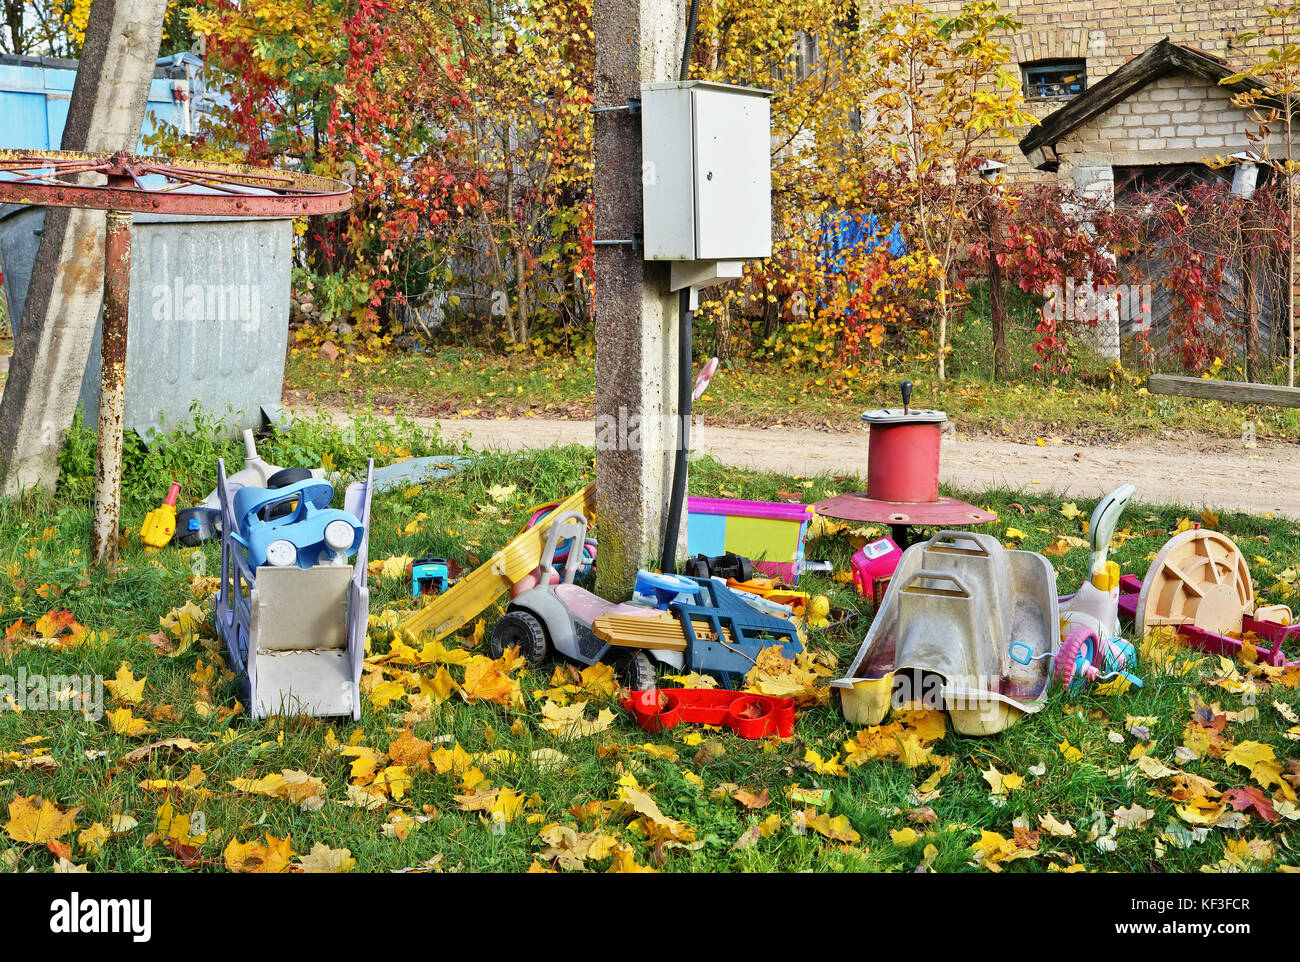 Old broken forgotten outdoor  no name  children toys on autumn village lawn near electrical box. Golden maple leaves - Stock Image